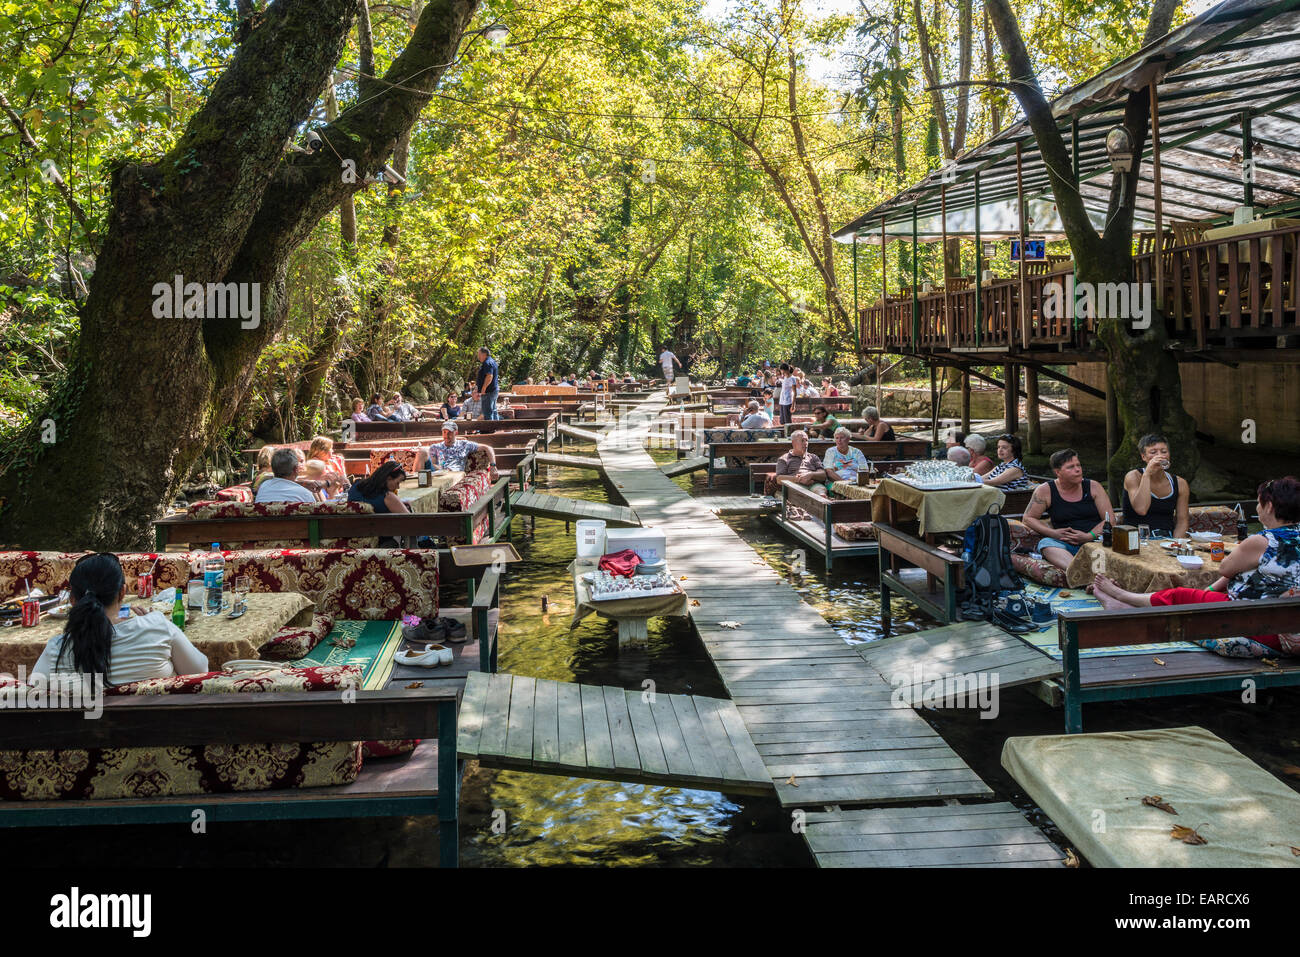 BOTANIK fish festaurant in coastal forest, seating above the trout waters, Ulupınar, Antalya Province, Turkey - Stock Image